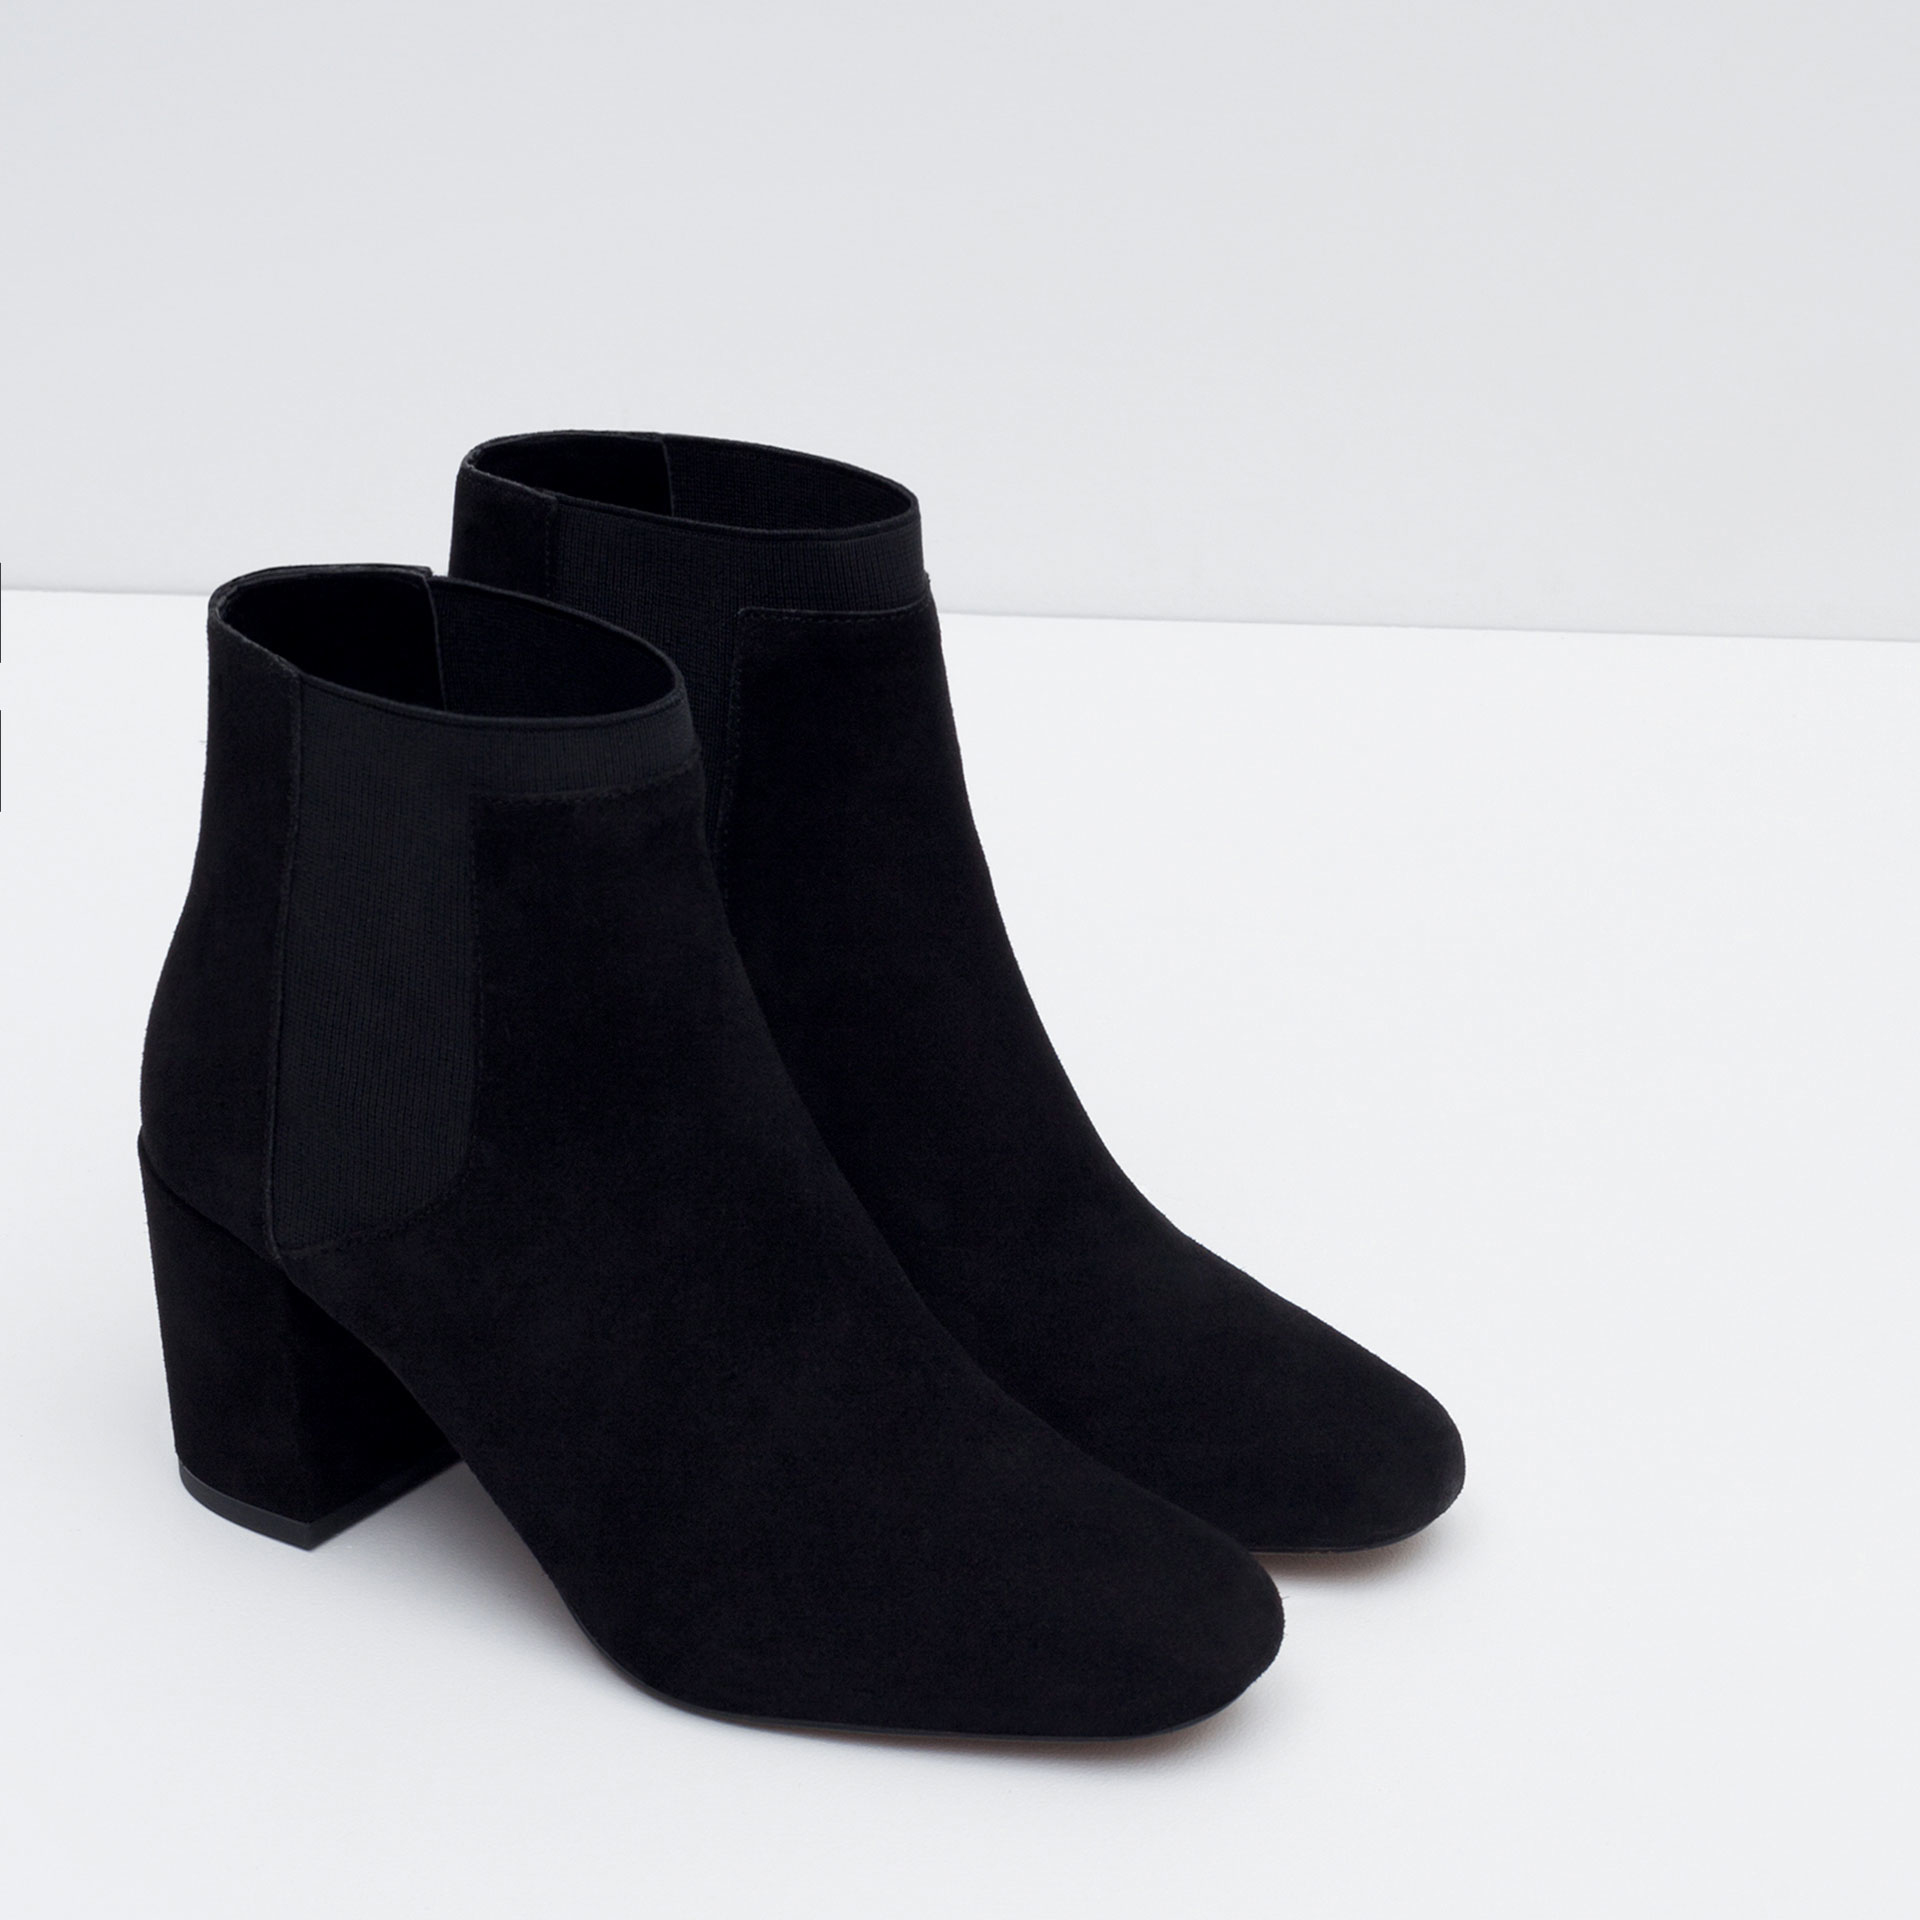 zara elastic high heel leather ankle boots in black lyst